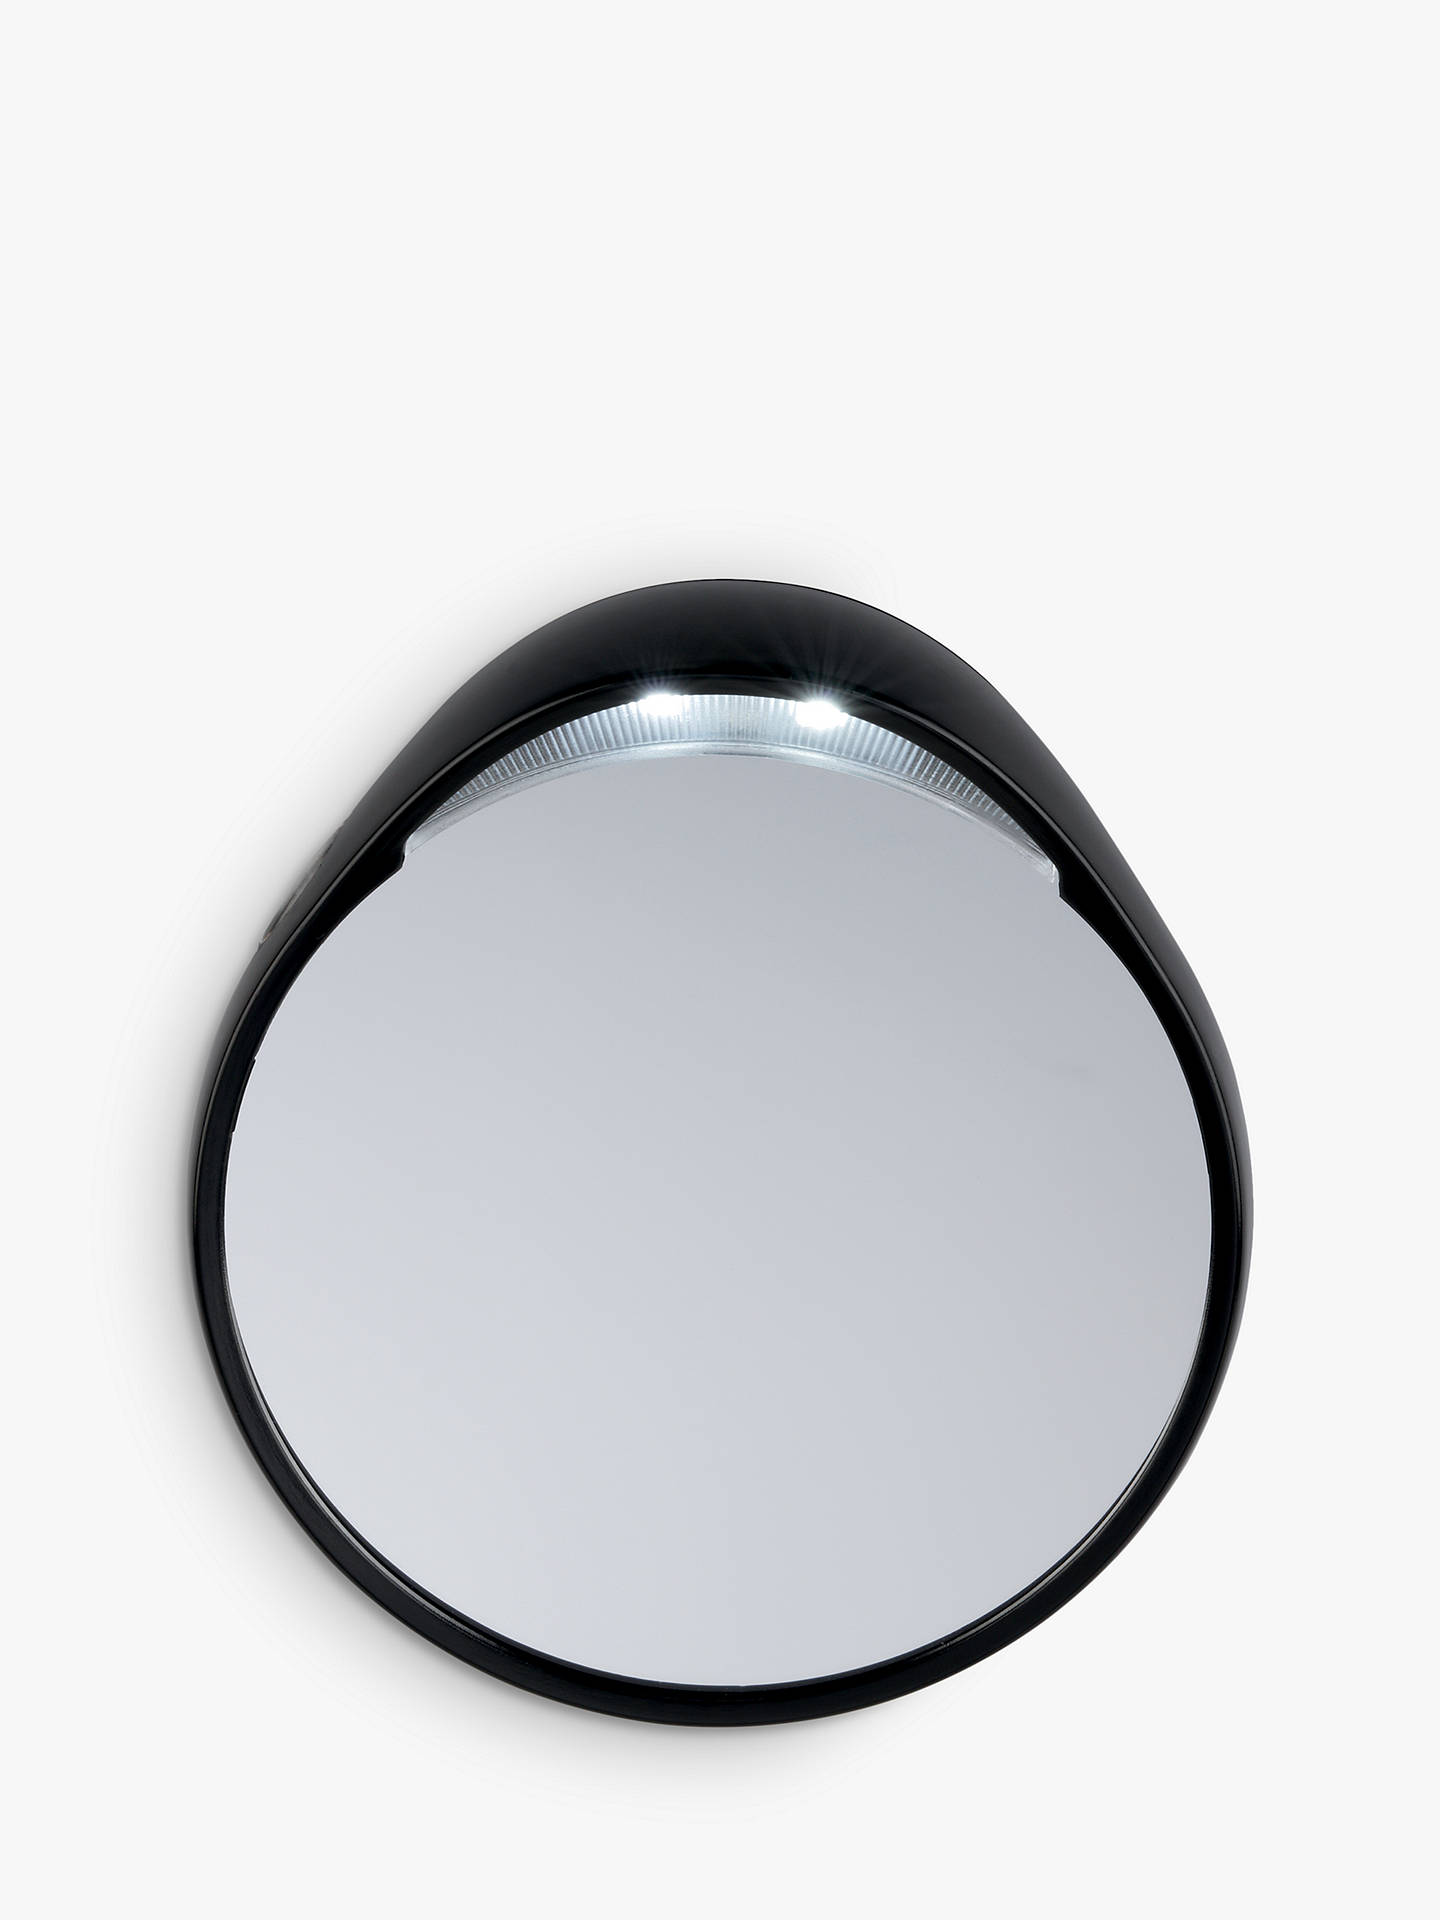 Tweezermate 10x Lighted Mirror, Silver by Tweezerman